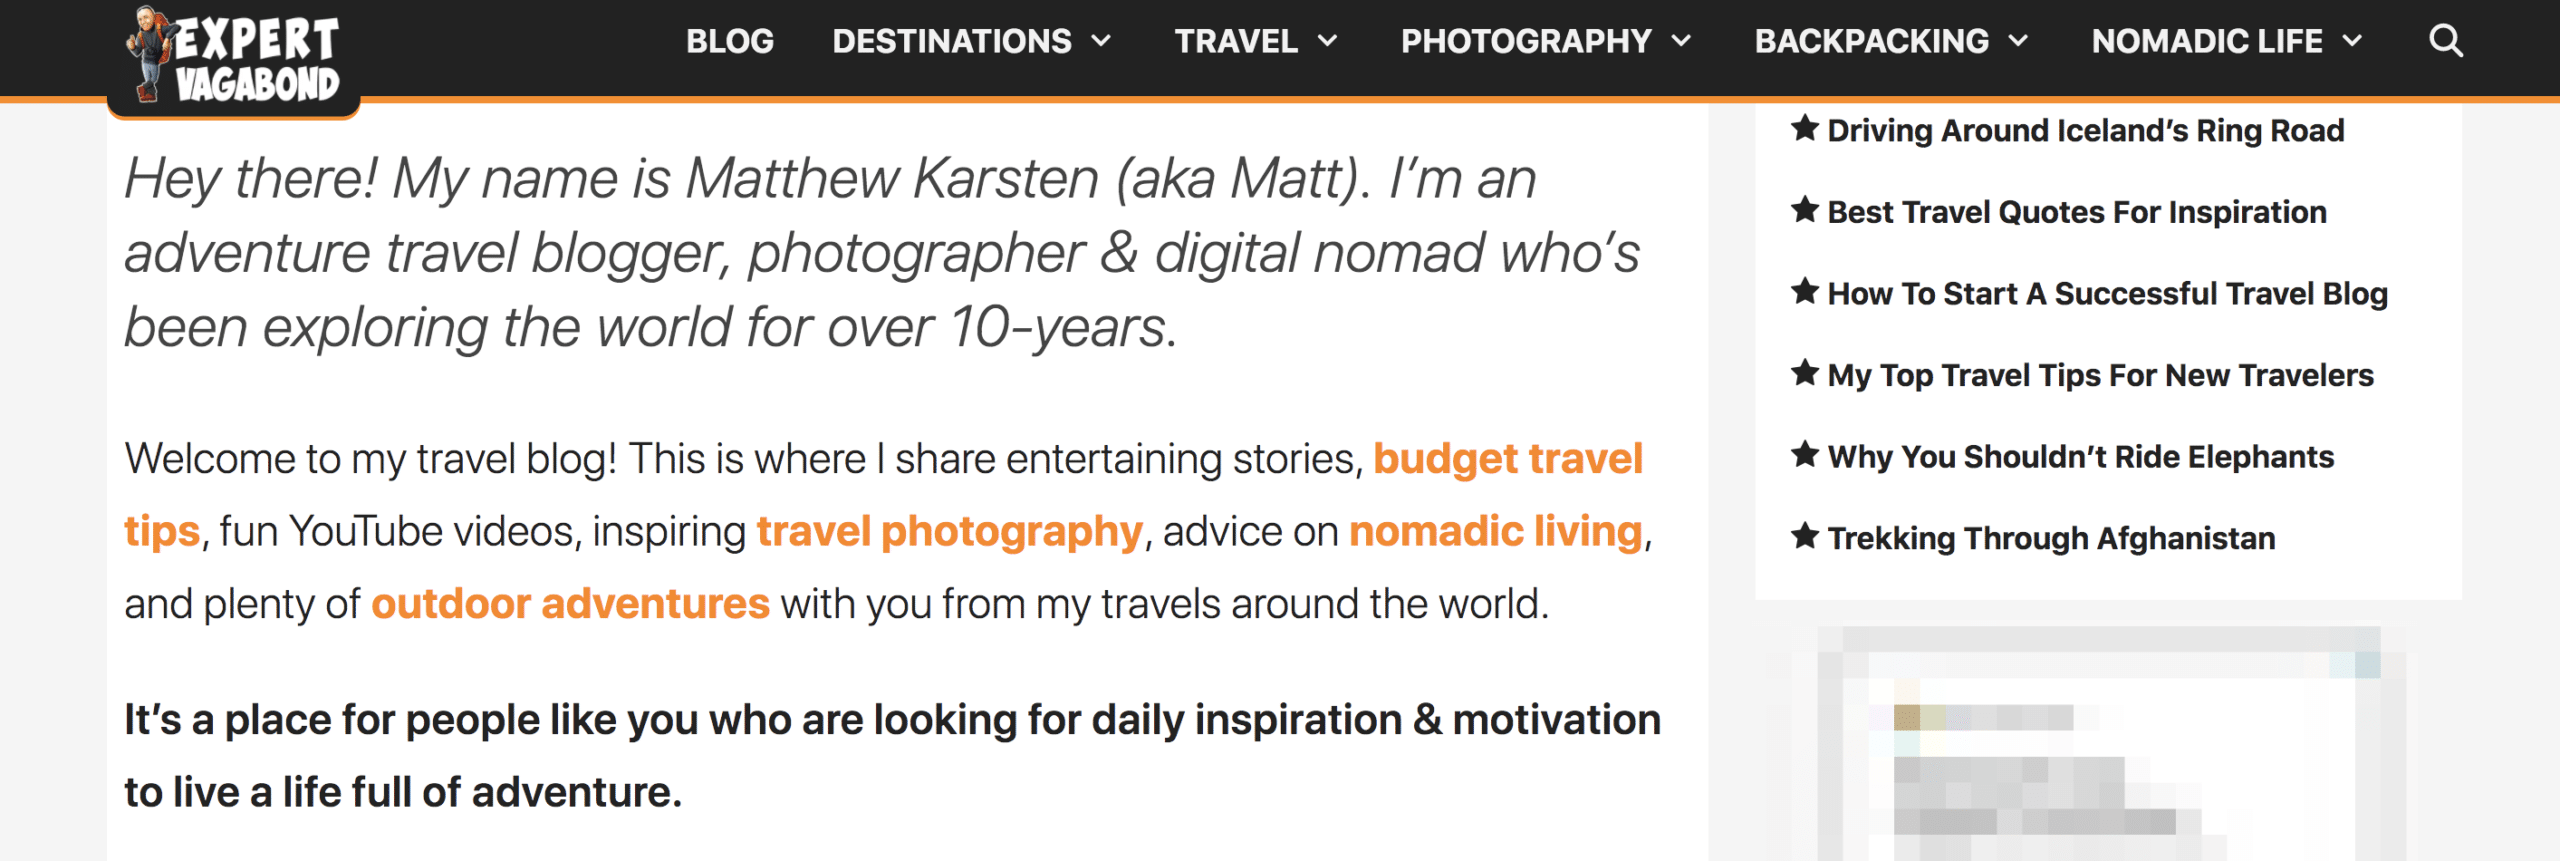 expert vagabond travel blogger bio example